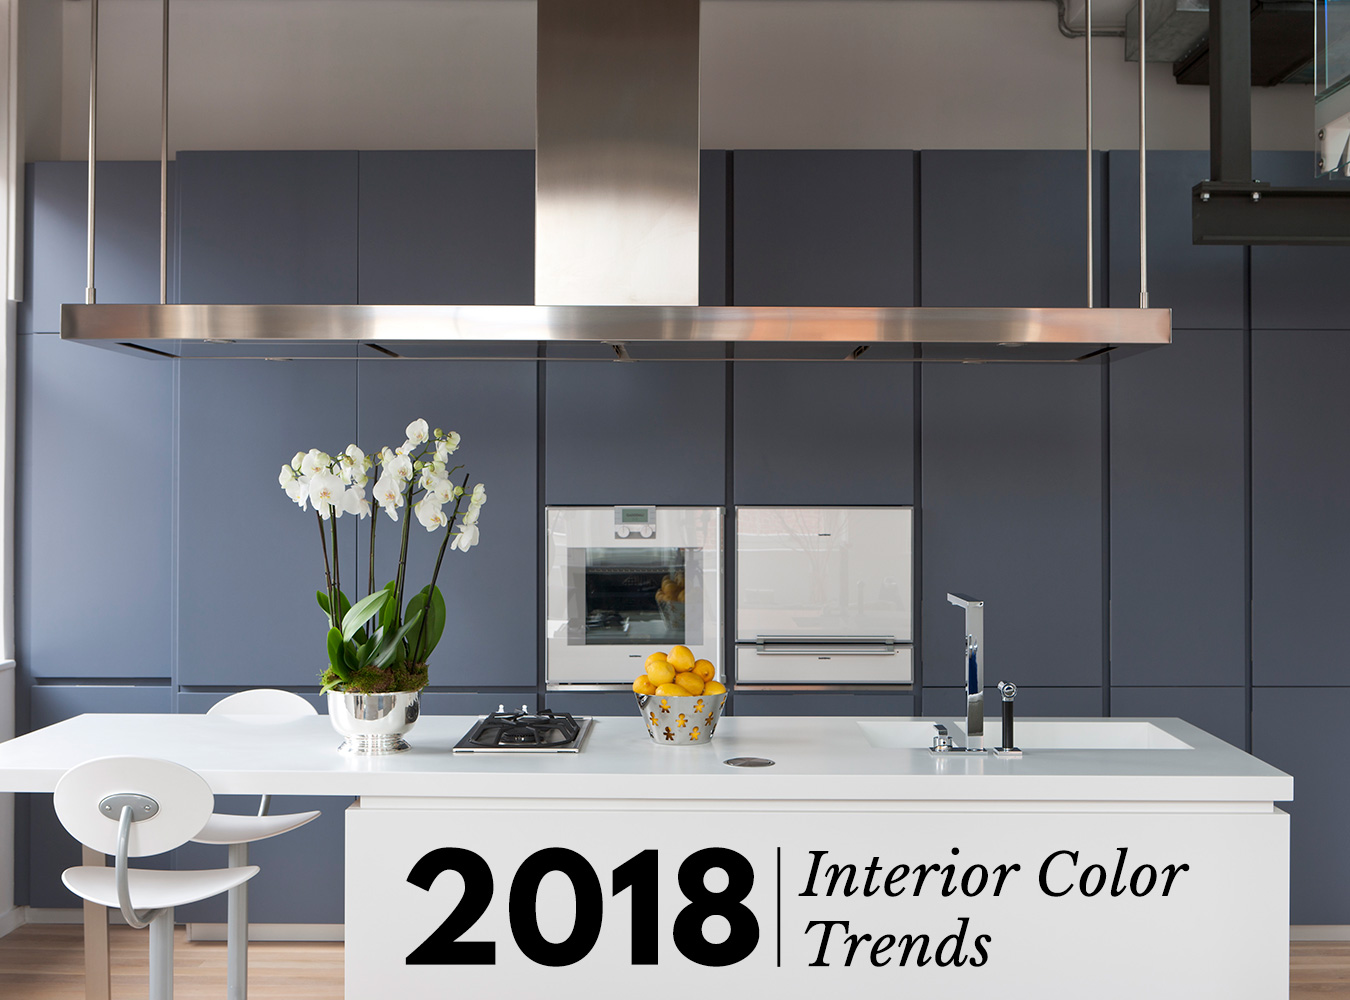 Home Interior Colors For 2018 | Psoriasisguru.com